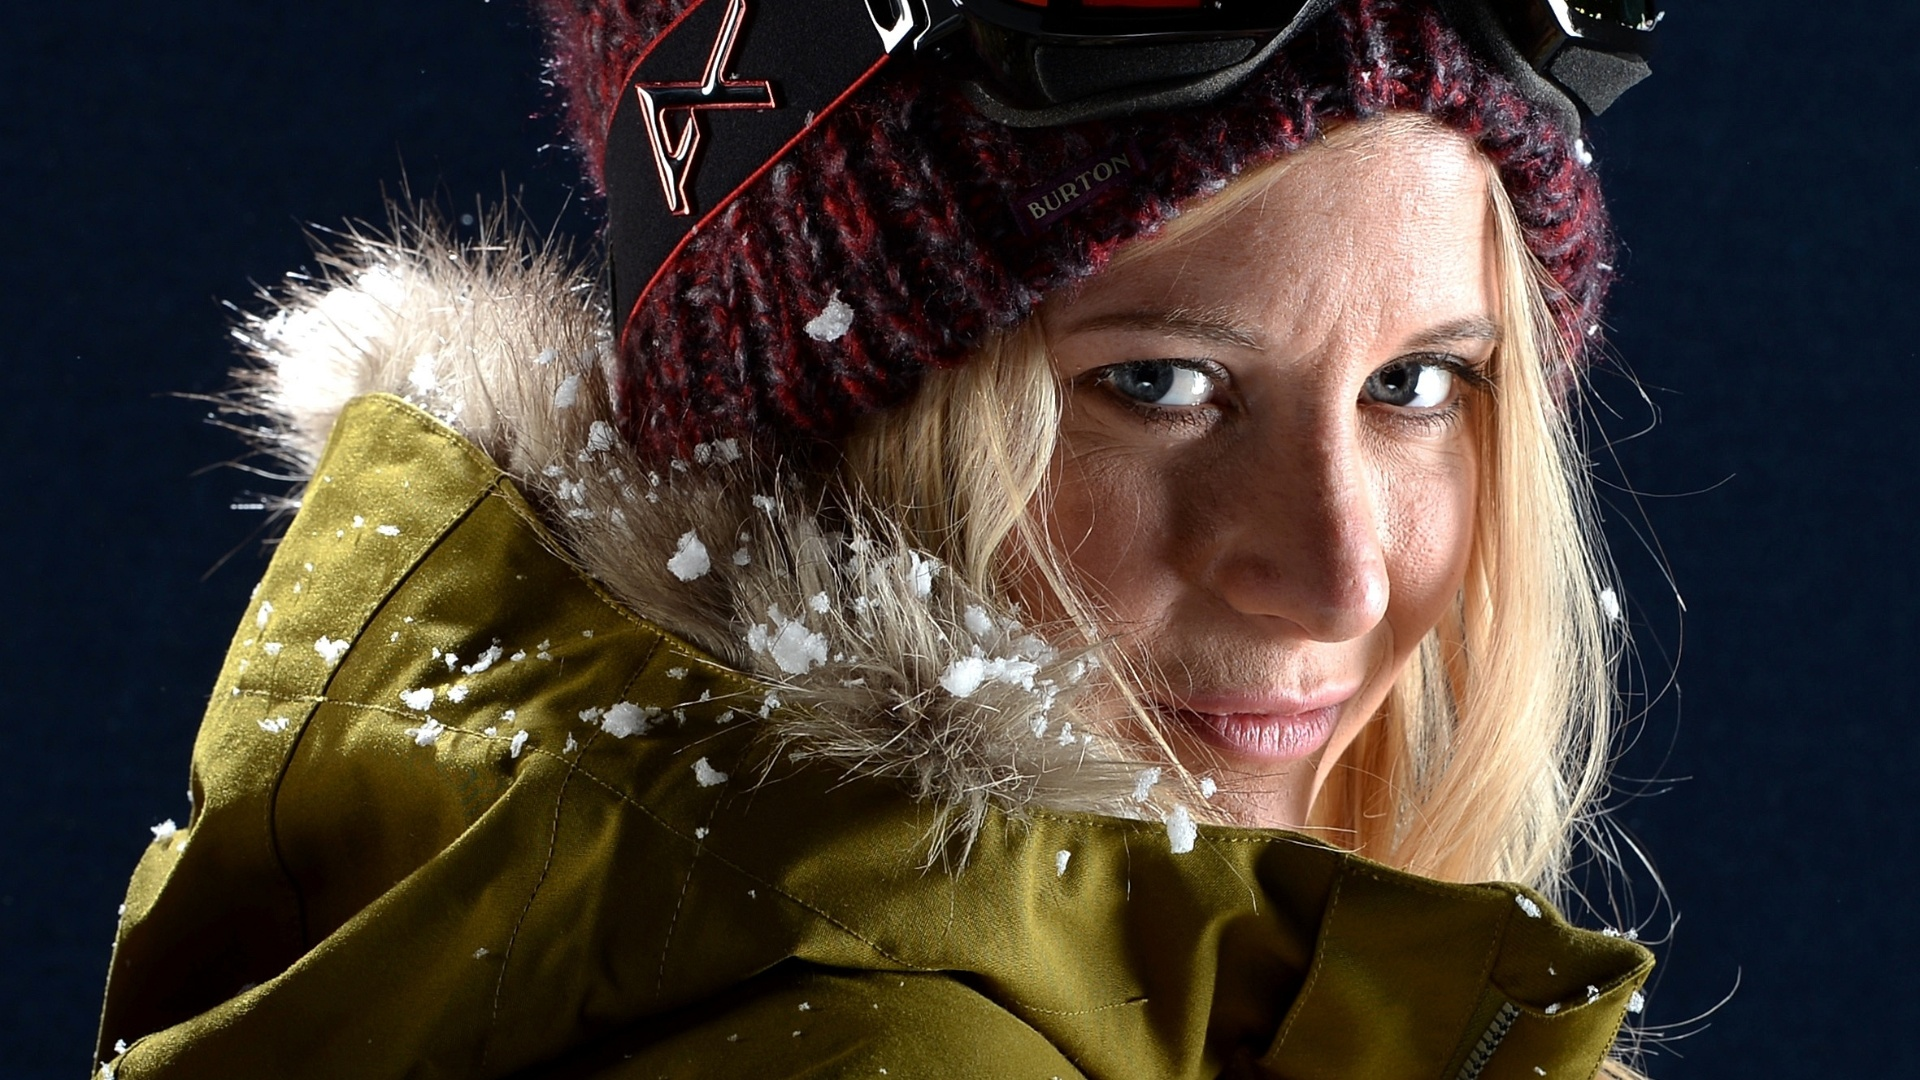 Hannah Teter, destaque norte-americana do snowboard